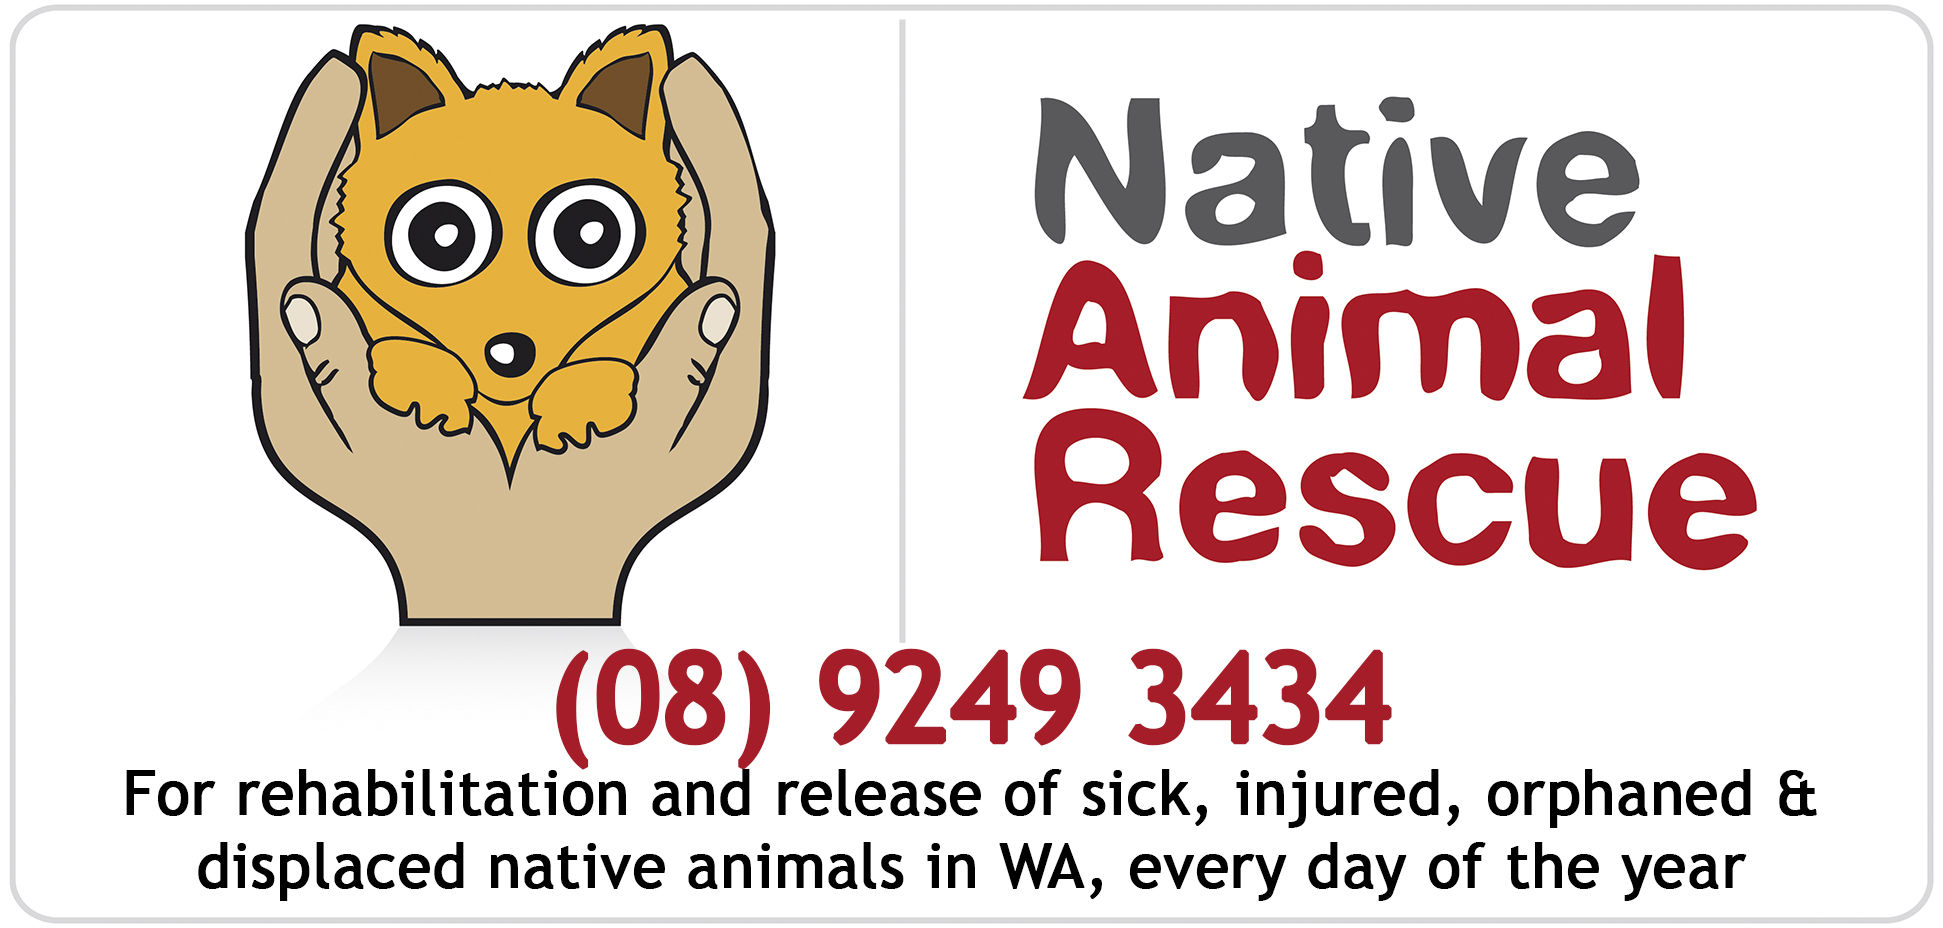 If you find an injured native animal in WA, please call us on 9249 3434